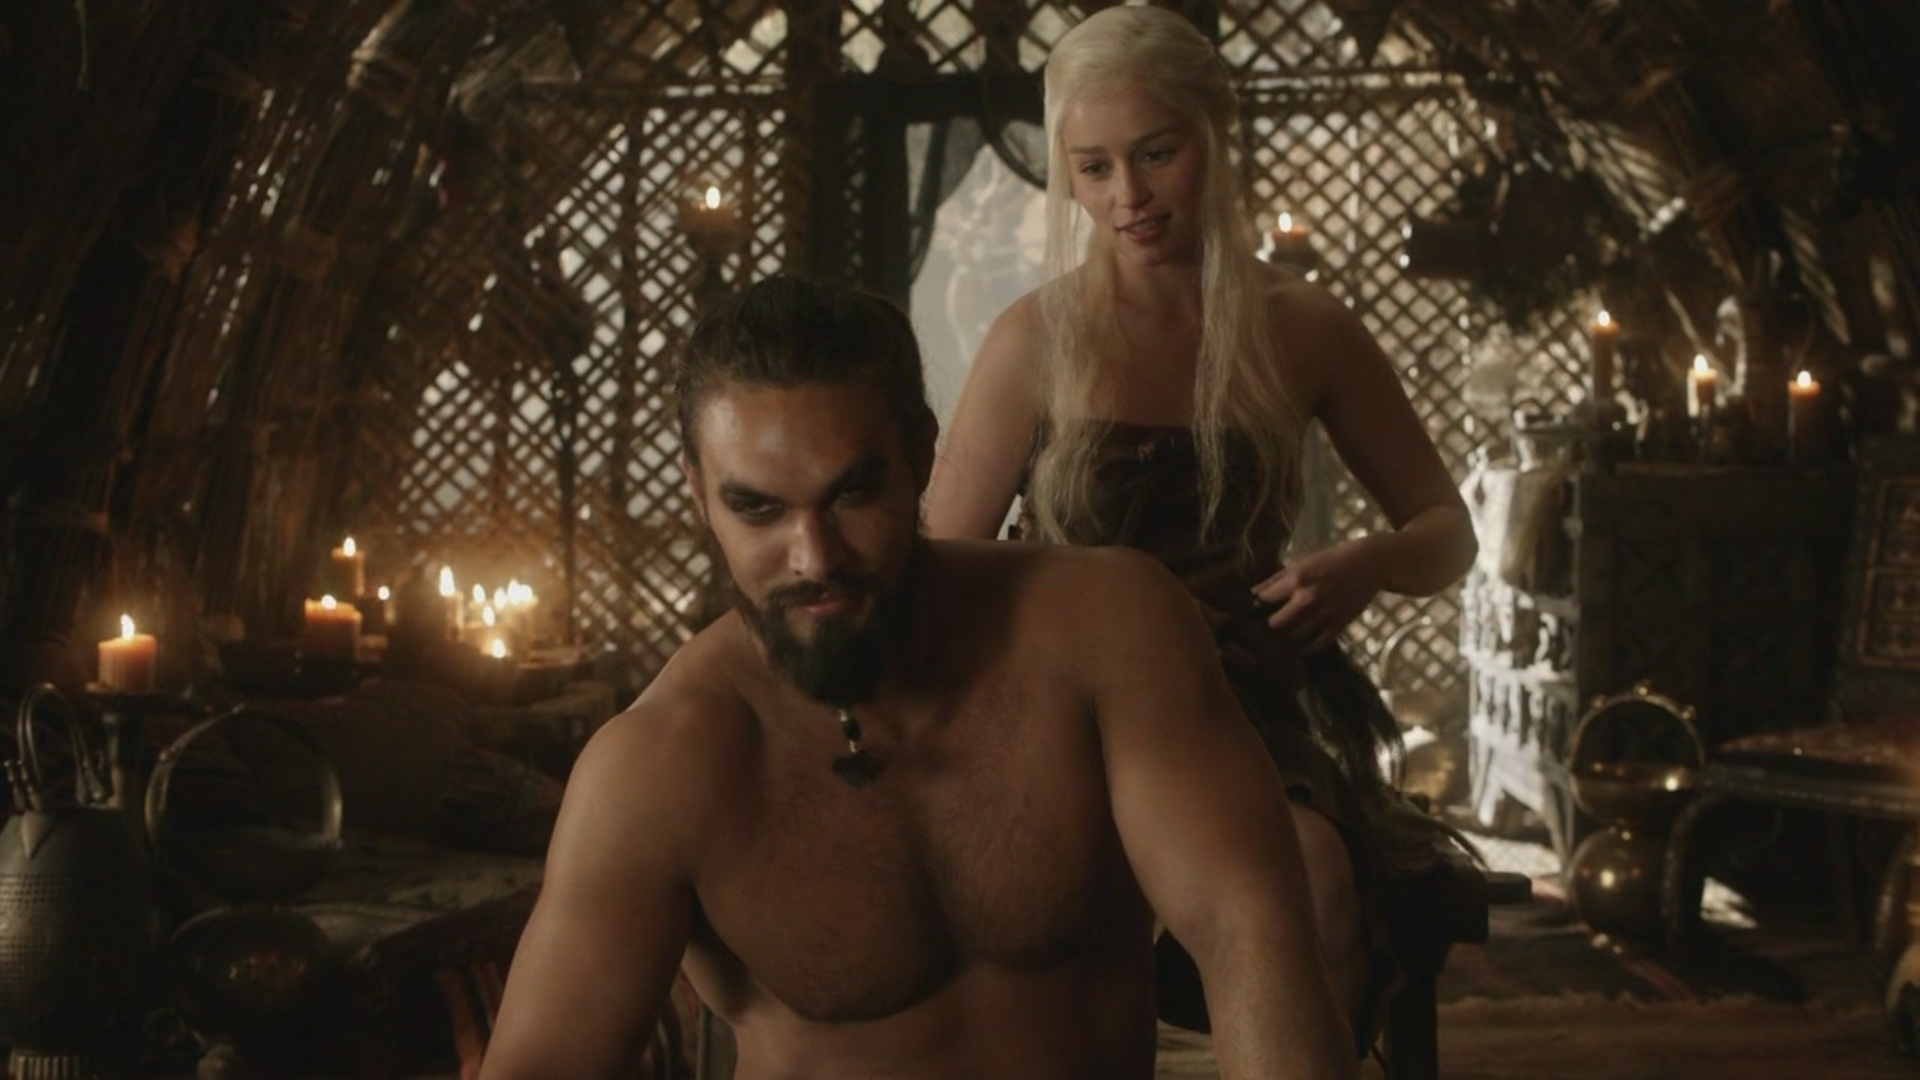 Game Of Thrones Nude Scense photo 12